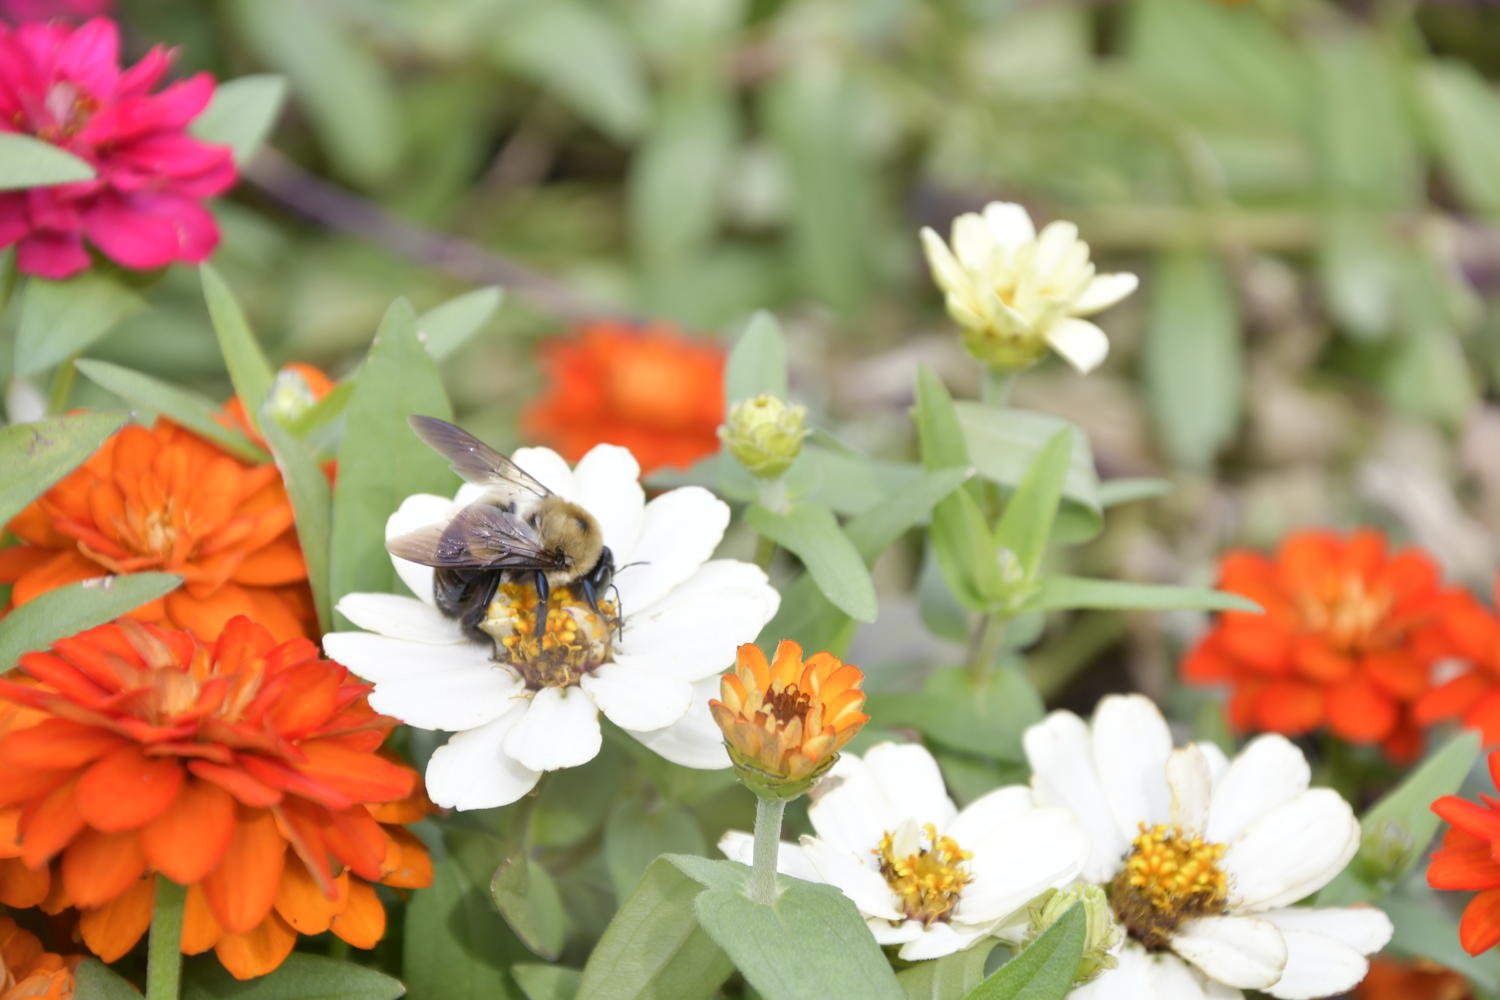 Flowers & Critters